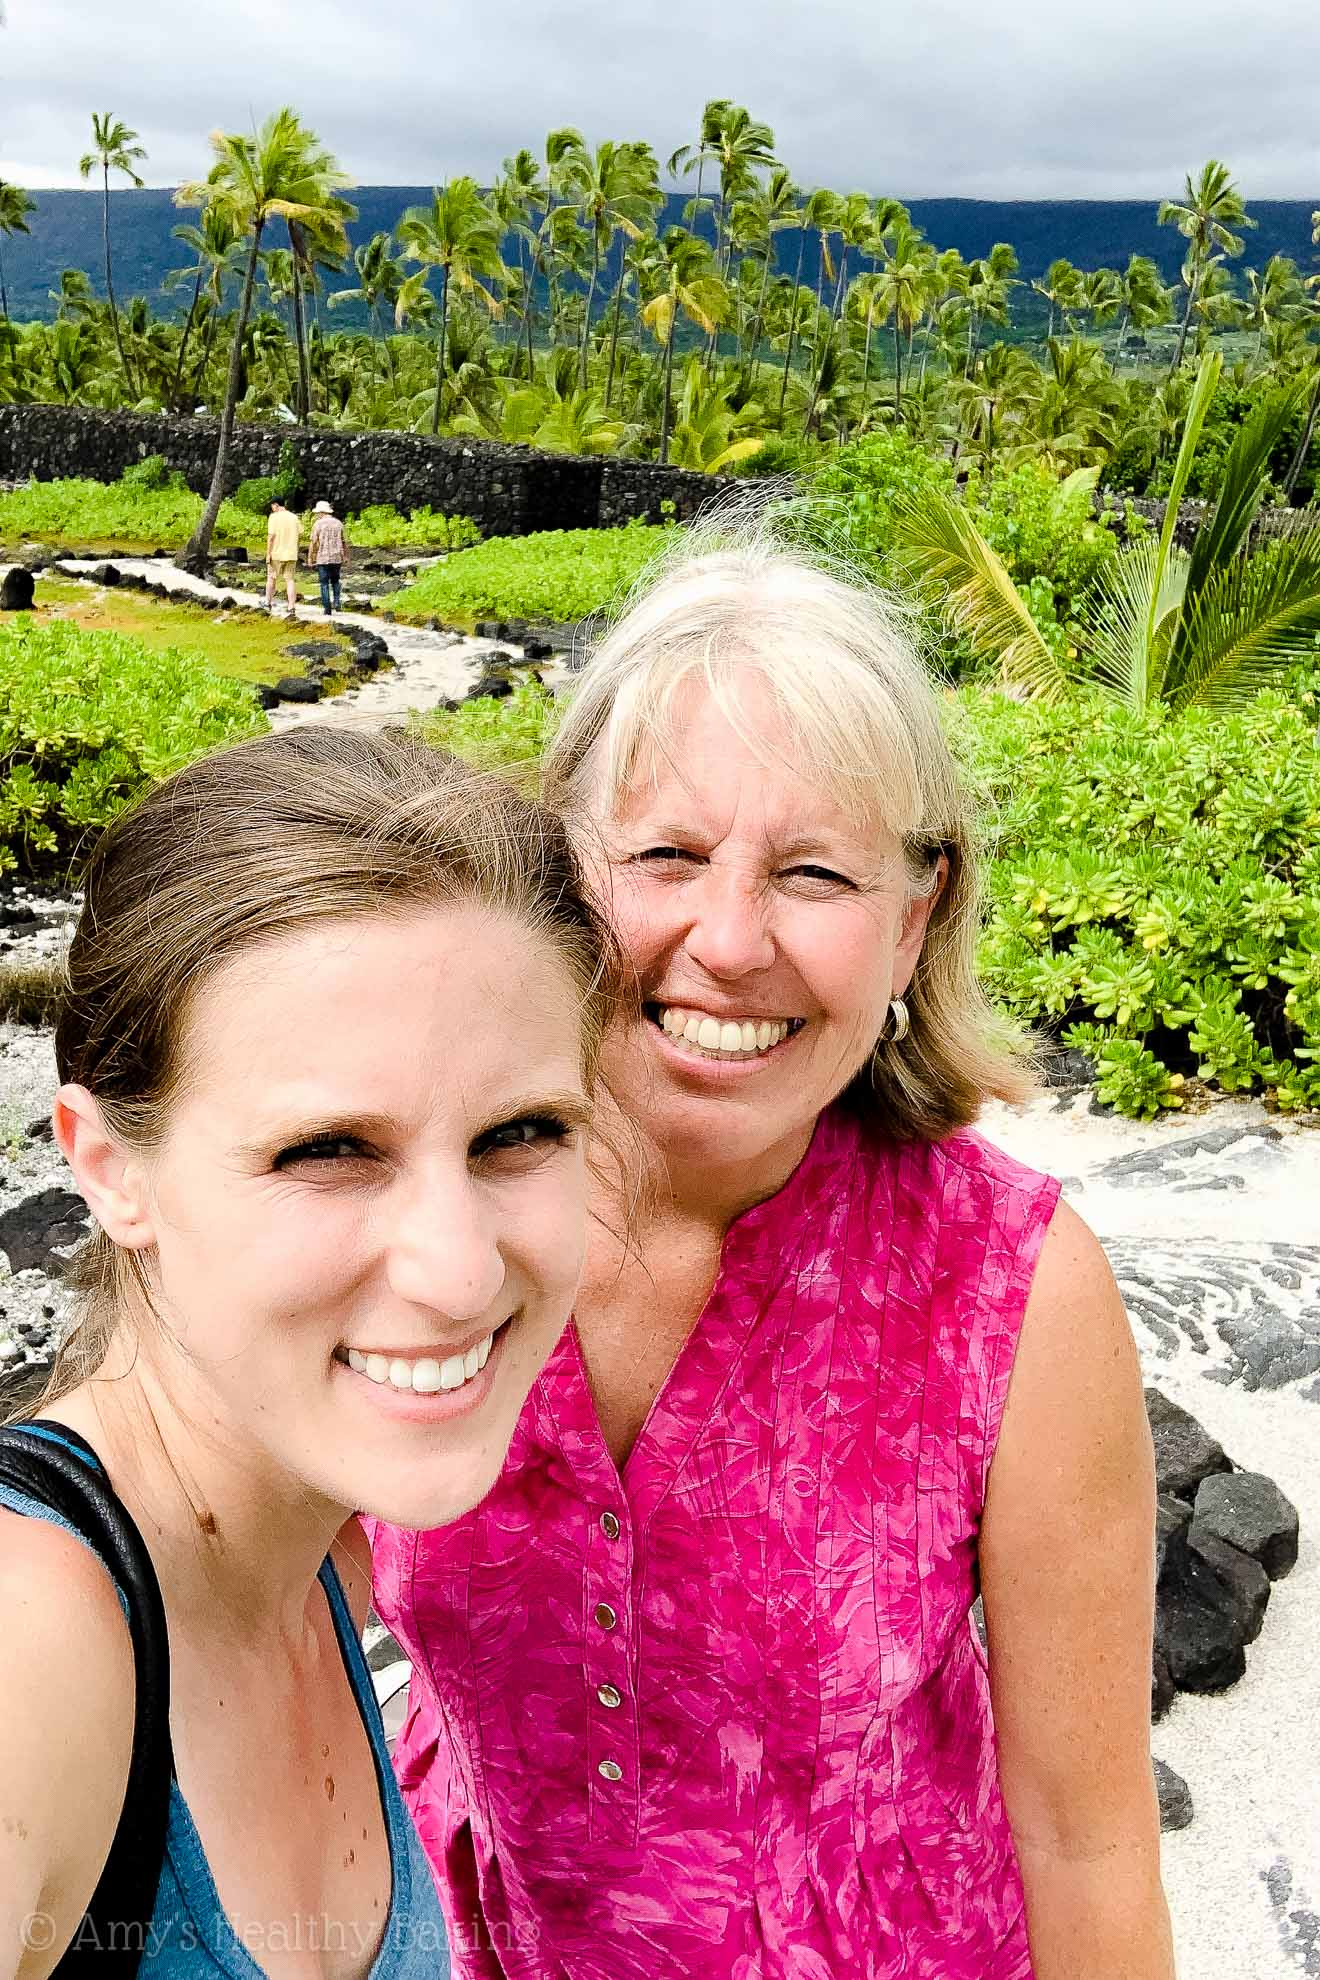 Amy Atherton, from Amy's Healthy Baking, on a Big Island of Hawaii vacation